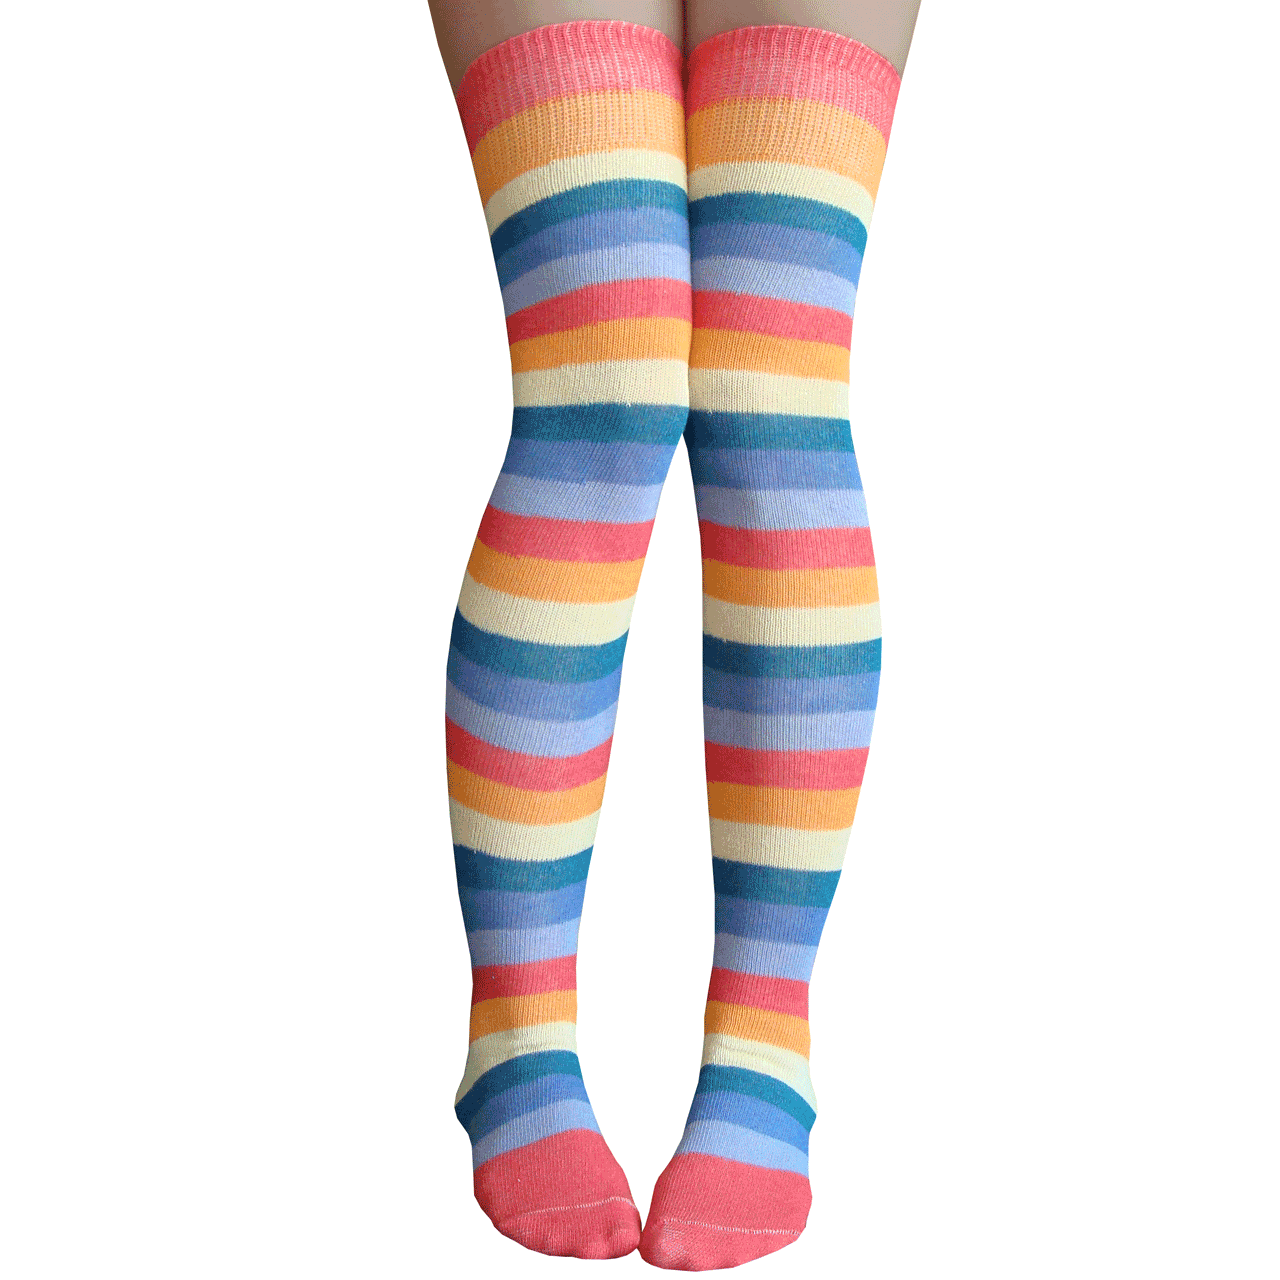 79758aee3b4 Washed out rainbow over the knee socks. See 1 more picture